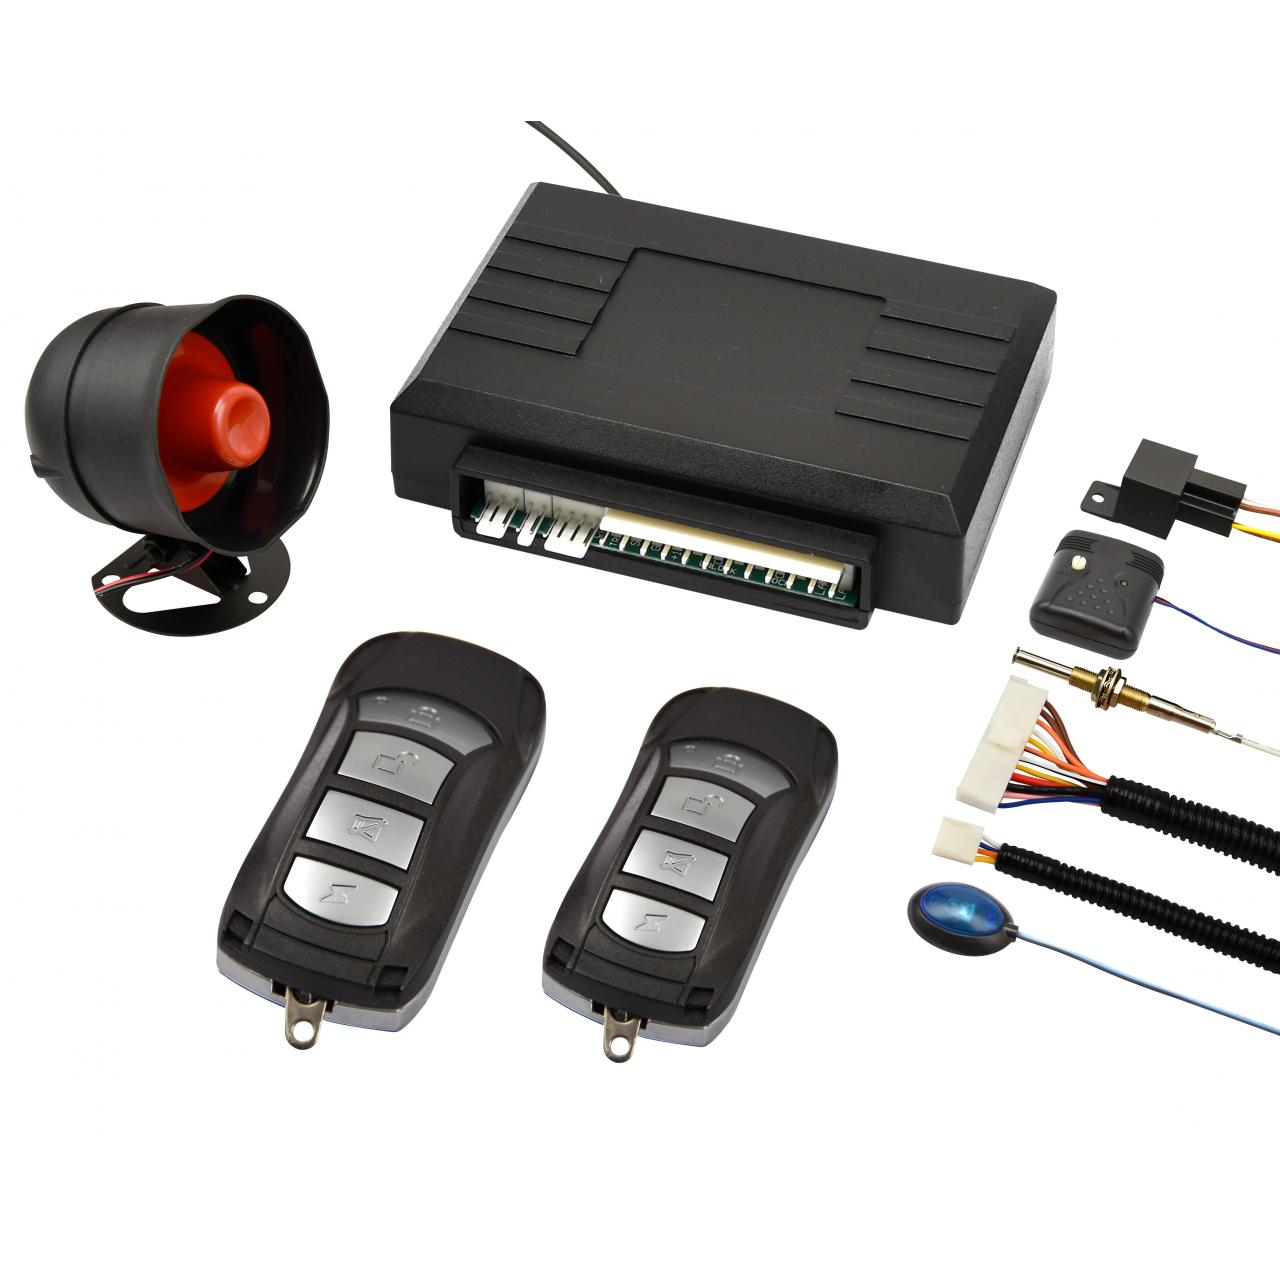 EG-L3000 universal one way car alarm, best selling model